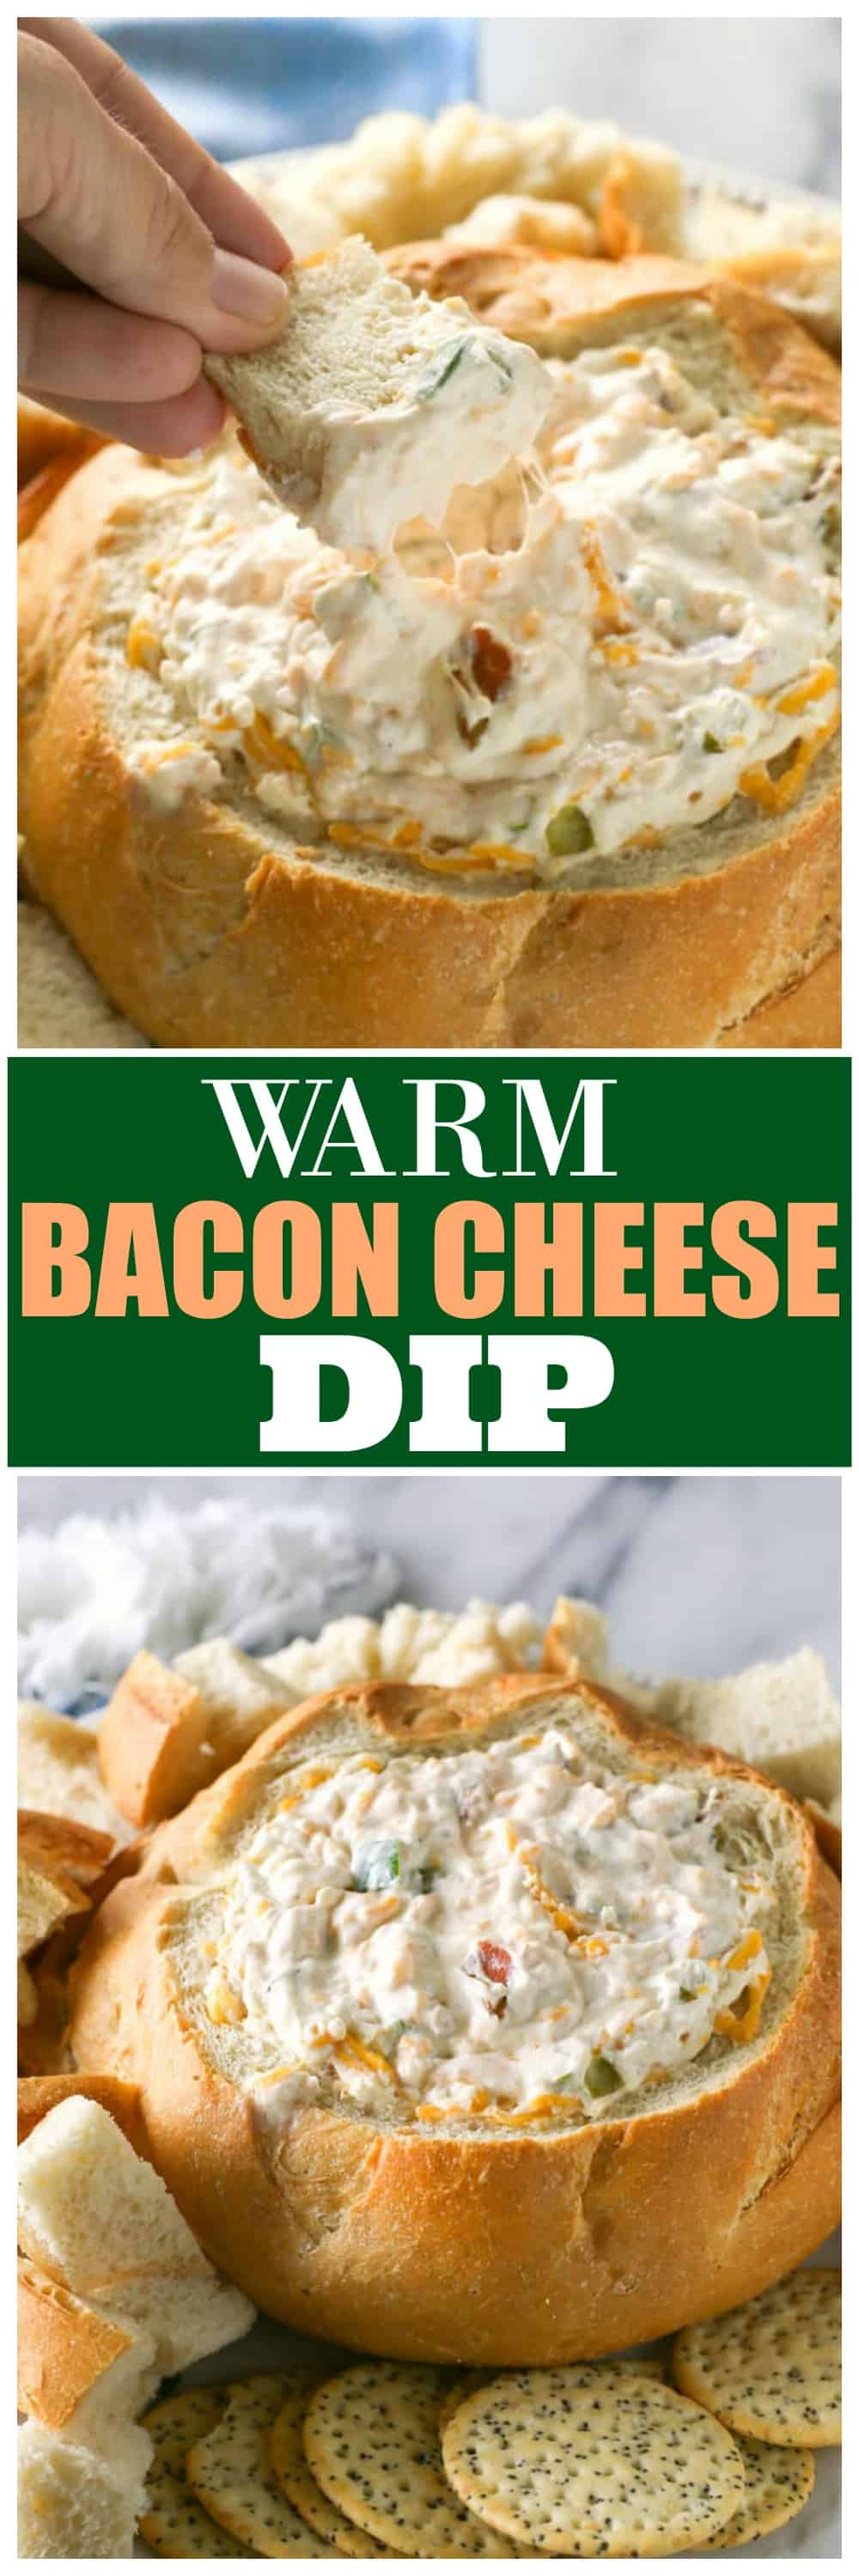 Warm Bacon Cheese Dip